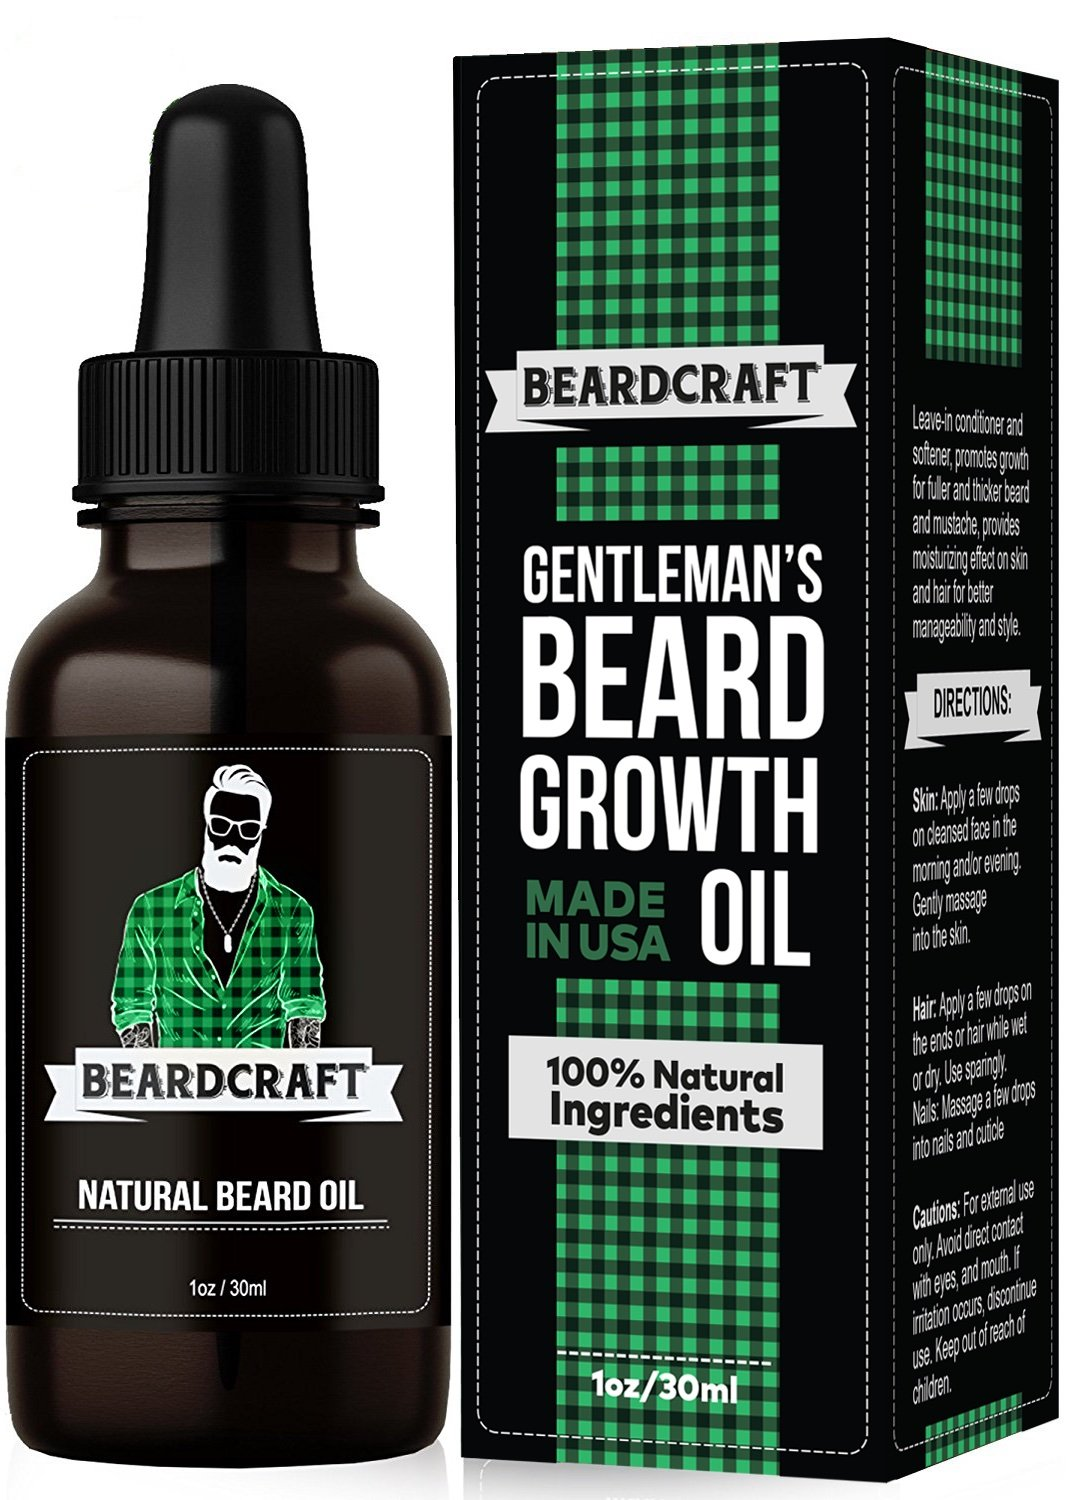 Beard Oil - Mustache Softener Moisturizer - Unscented Leave-in Conditioner - Beard Oil Growth Essence for Fuller and Thicker Beard - Natural Organic USA-Made Formula - Best Present for Men